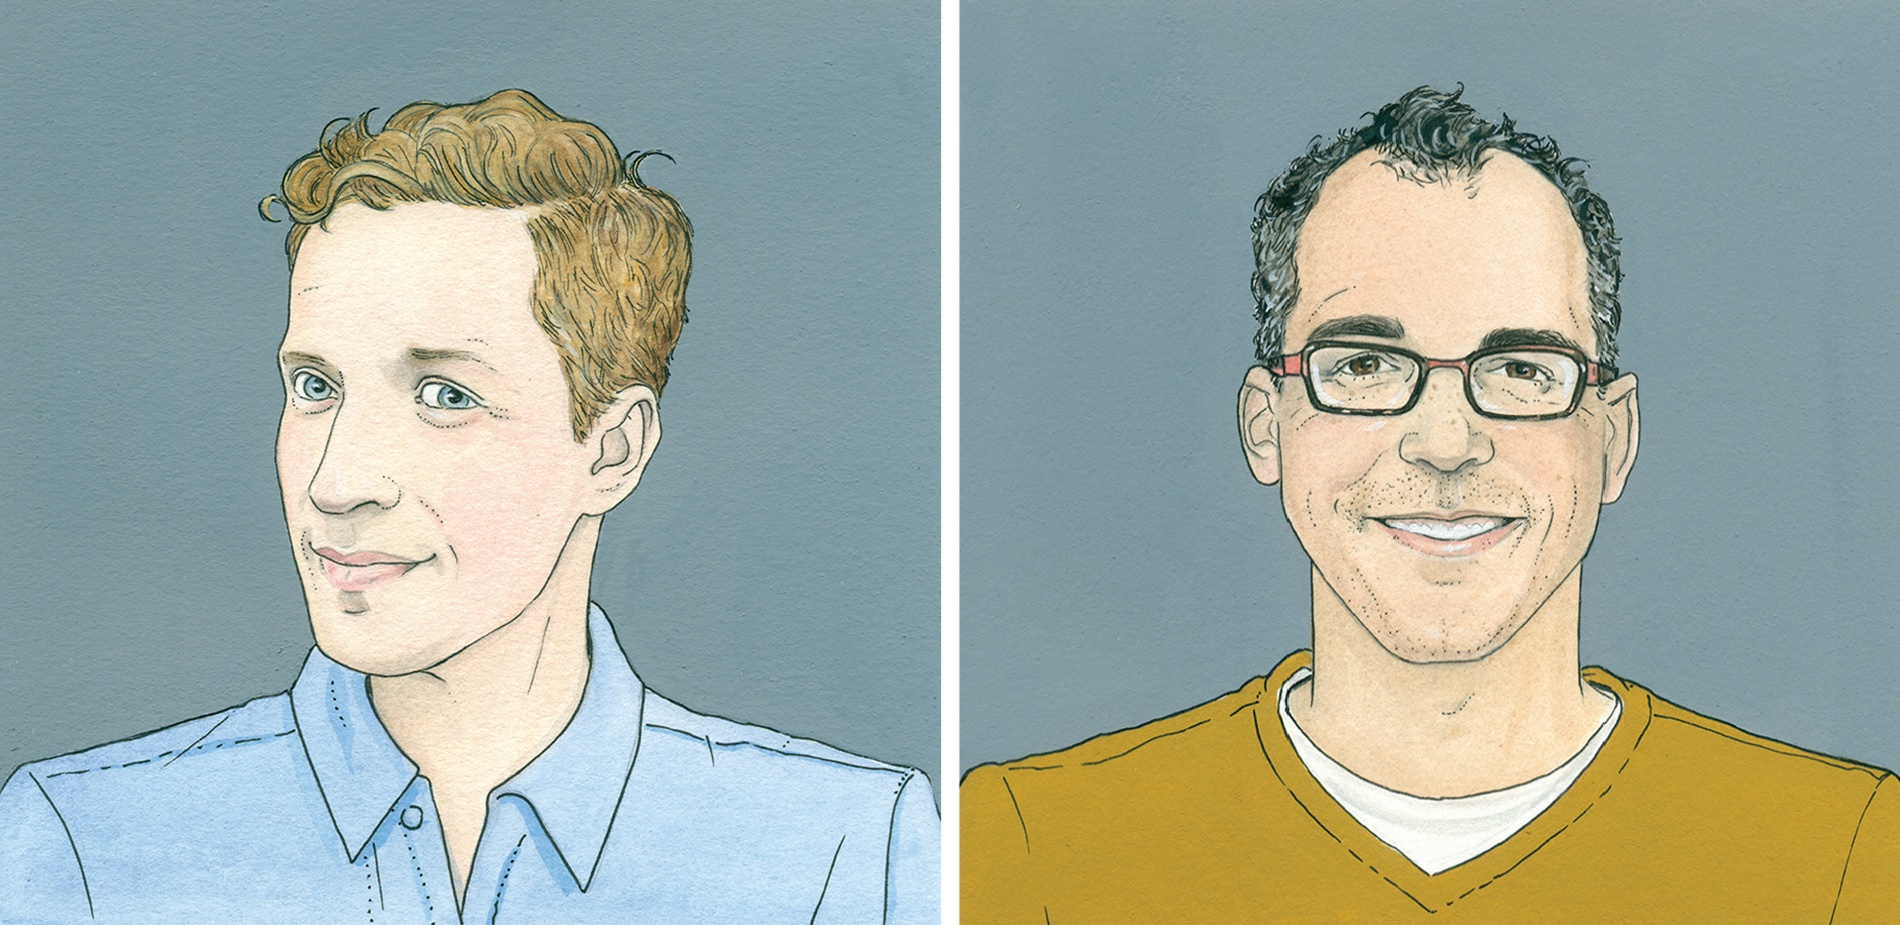 Illustrations of Andrew Sean Greer '92 (left) and James Forman Jr. '88 (right)